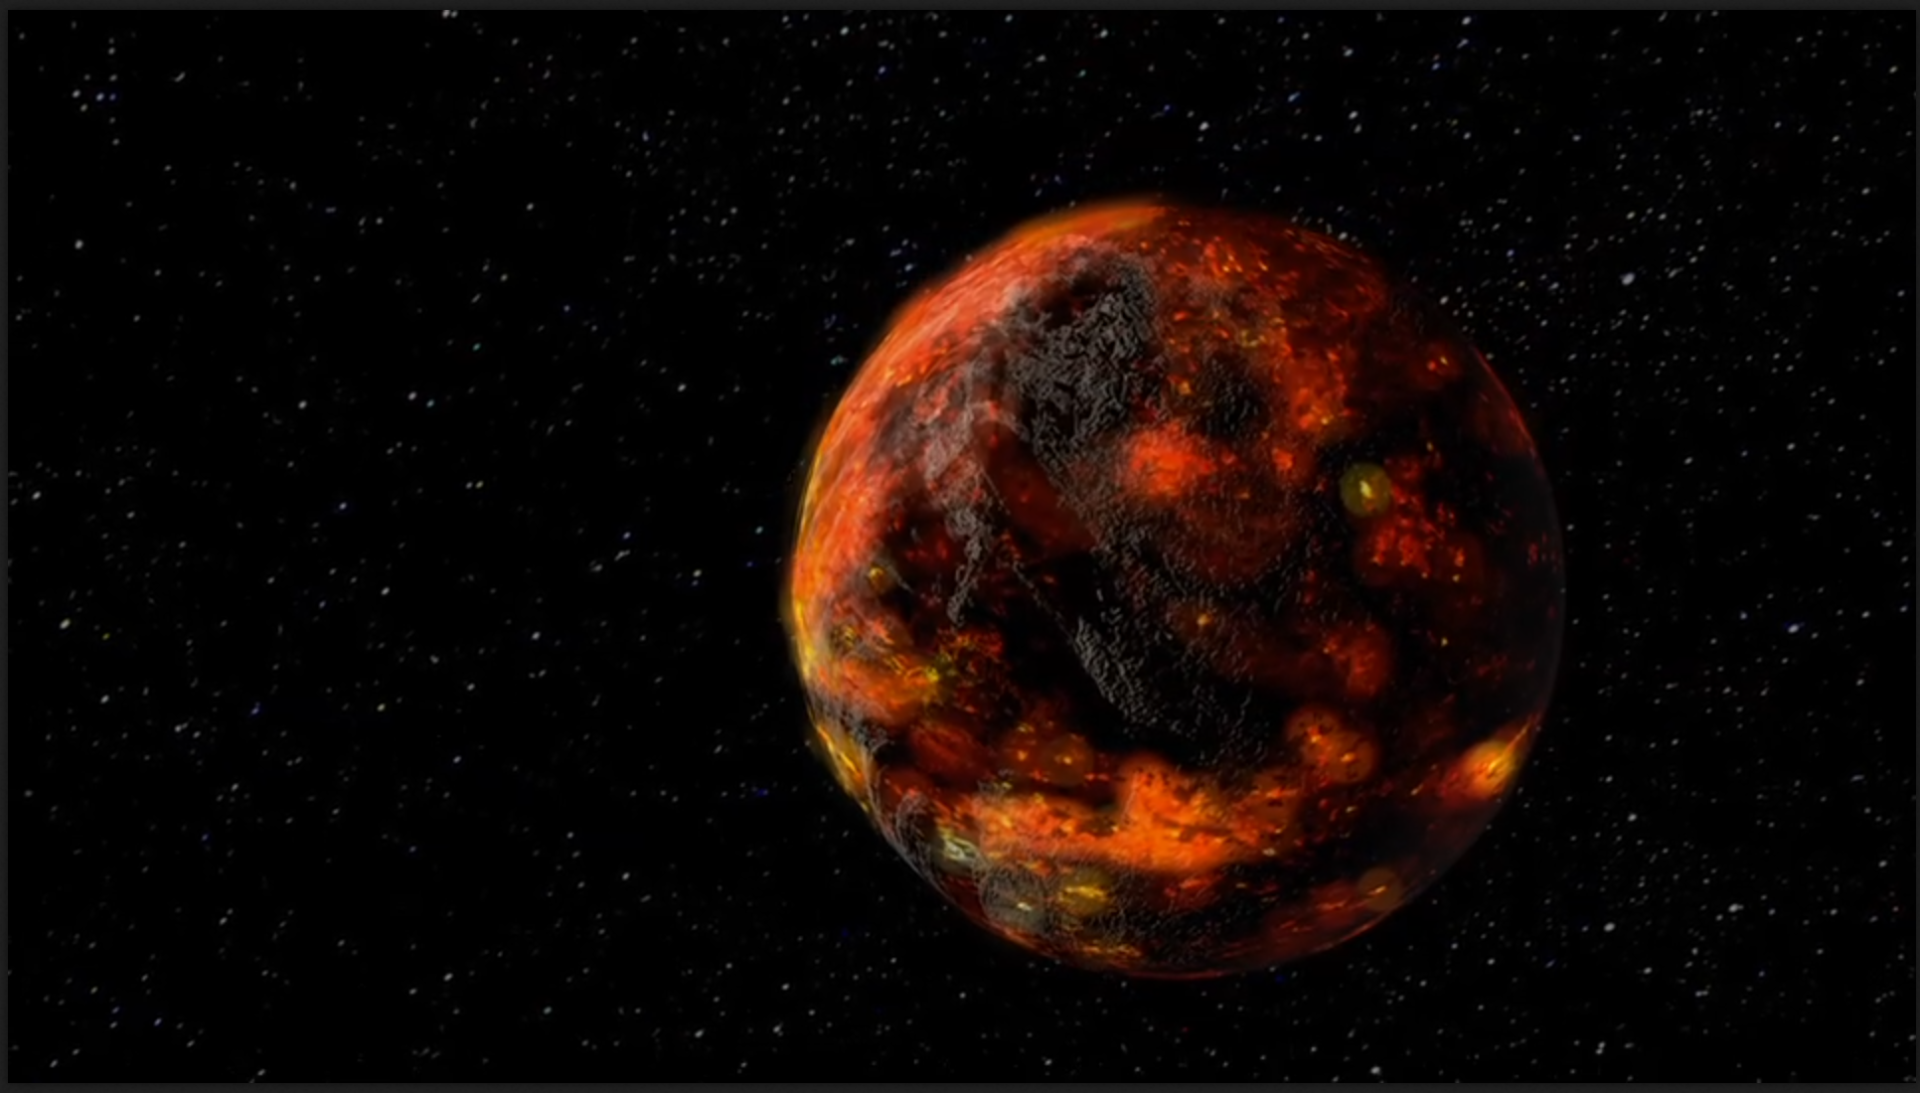 https://www.dlr.de/content/en/images/2020/3/magma-ocean-and-first-rocky-crust-on-the-moon.png?__blob=normal&v=3__ifc1920w